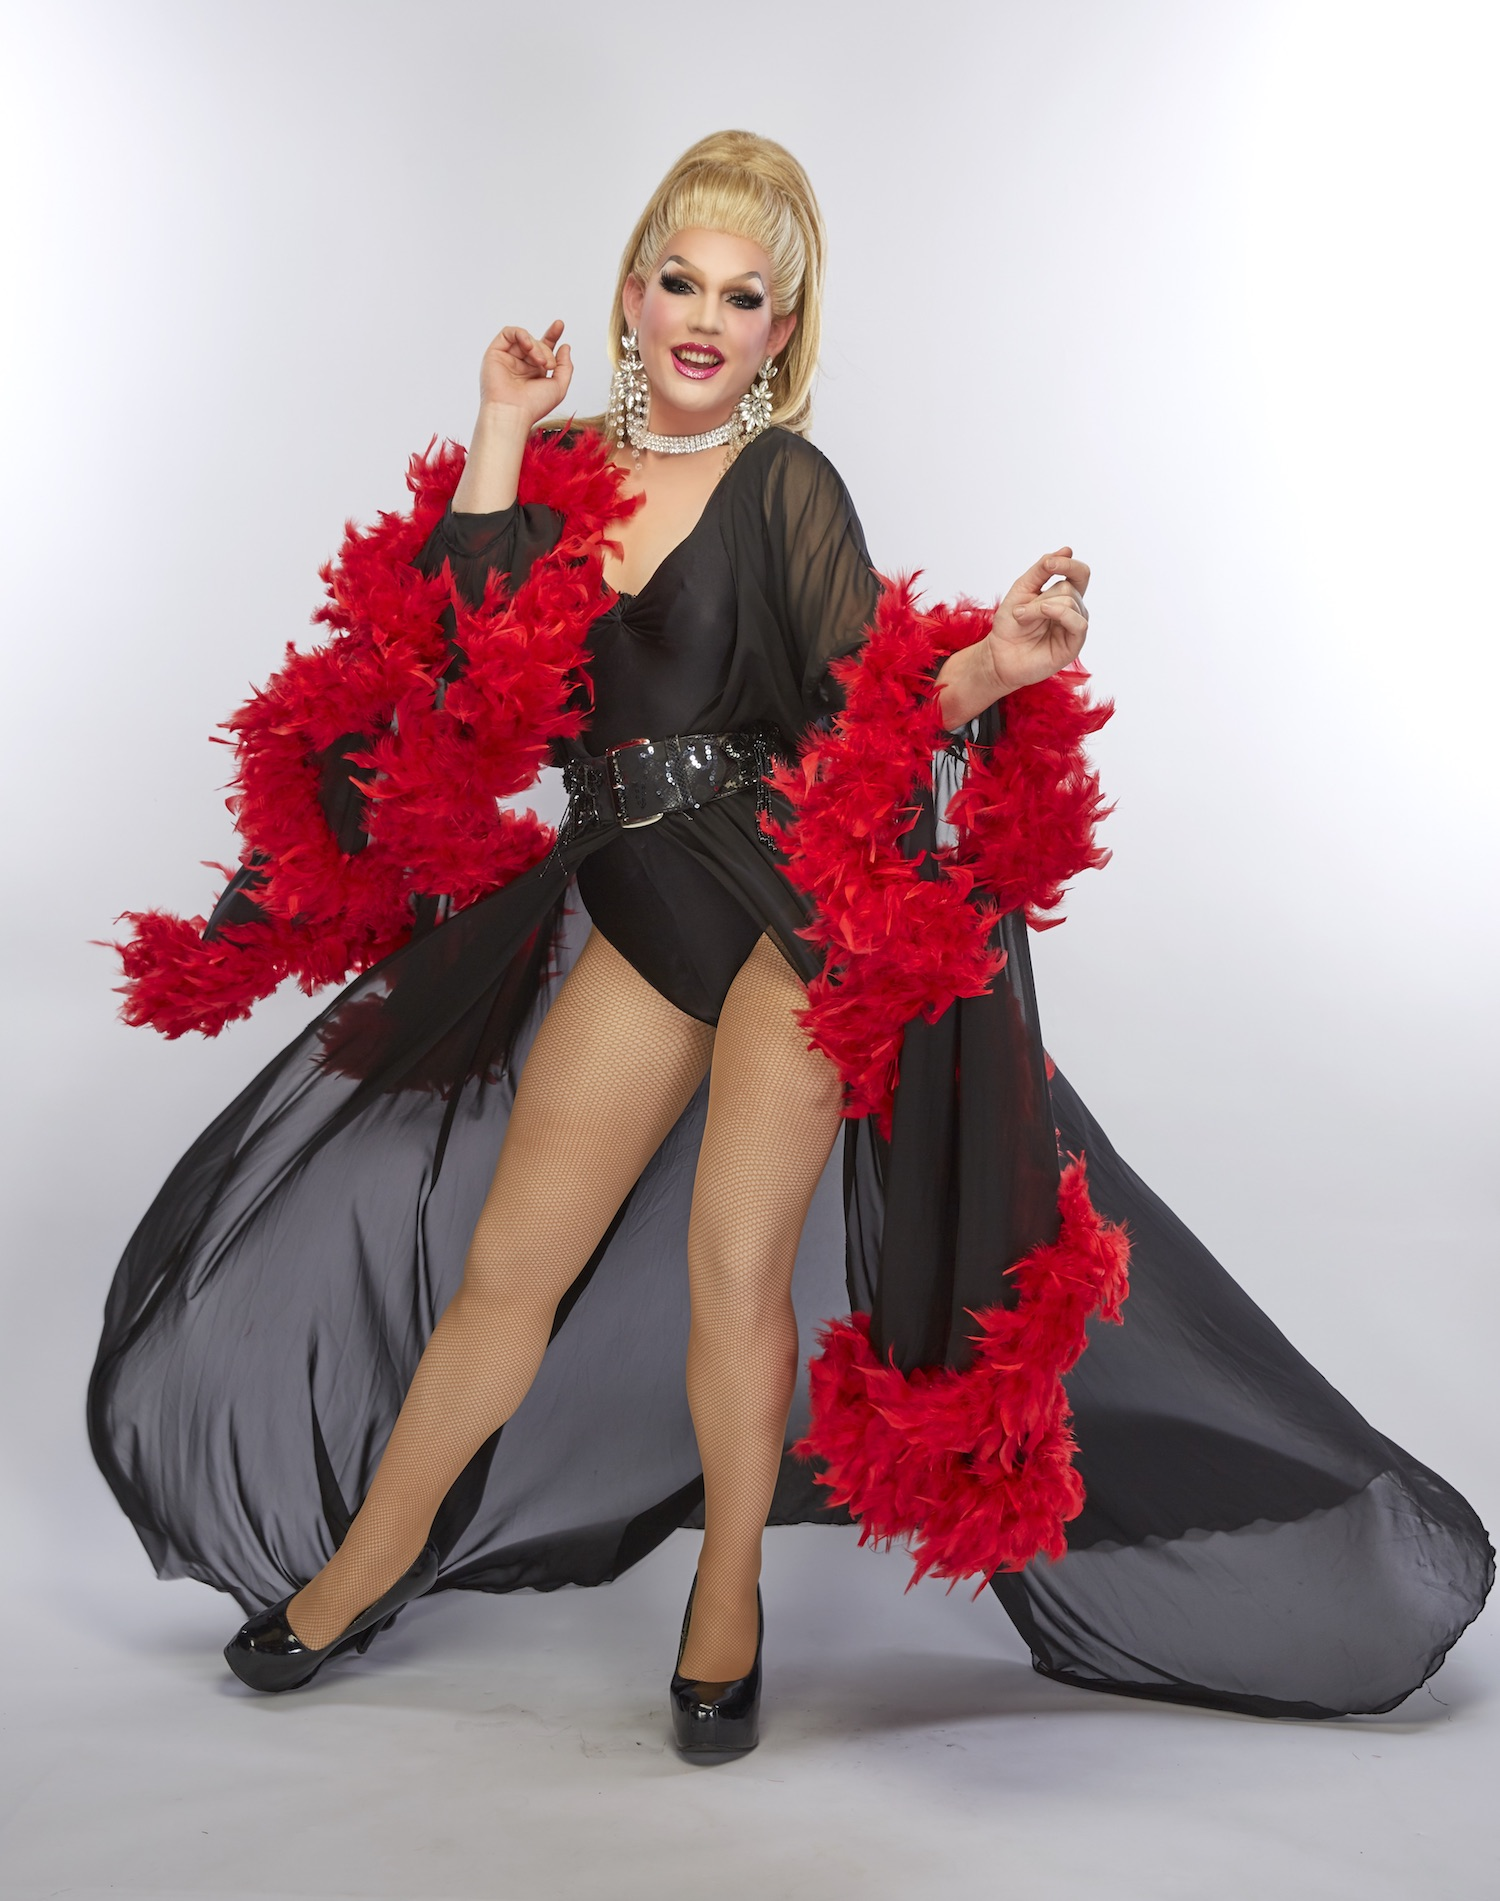 Award-winning Carmen Geddit - Sydney Drag Royalty - the best premier drag queens entertainers in Australia. For all types of events and production shows.